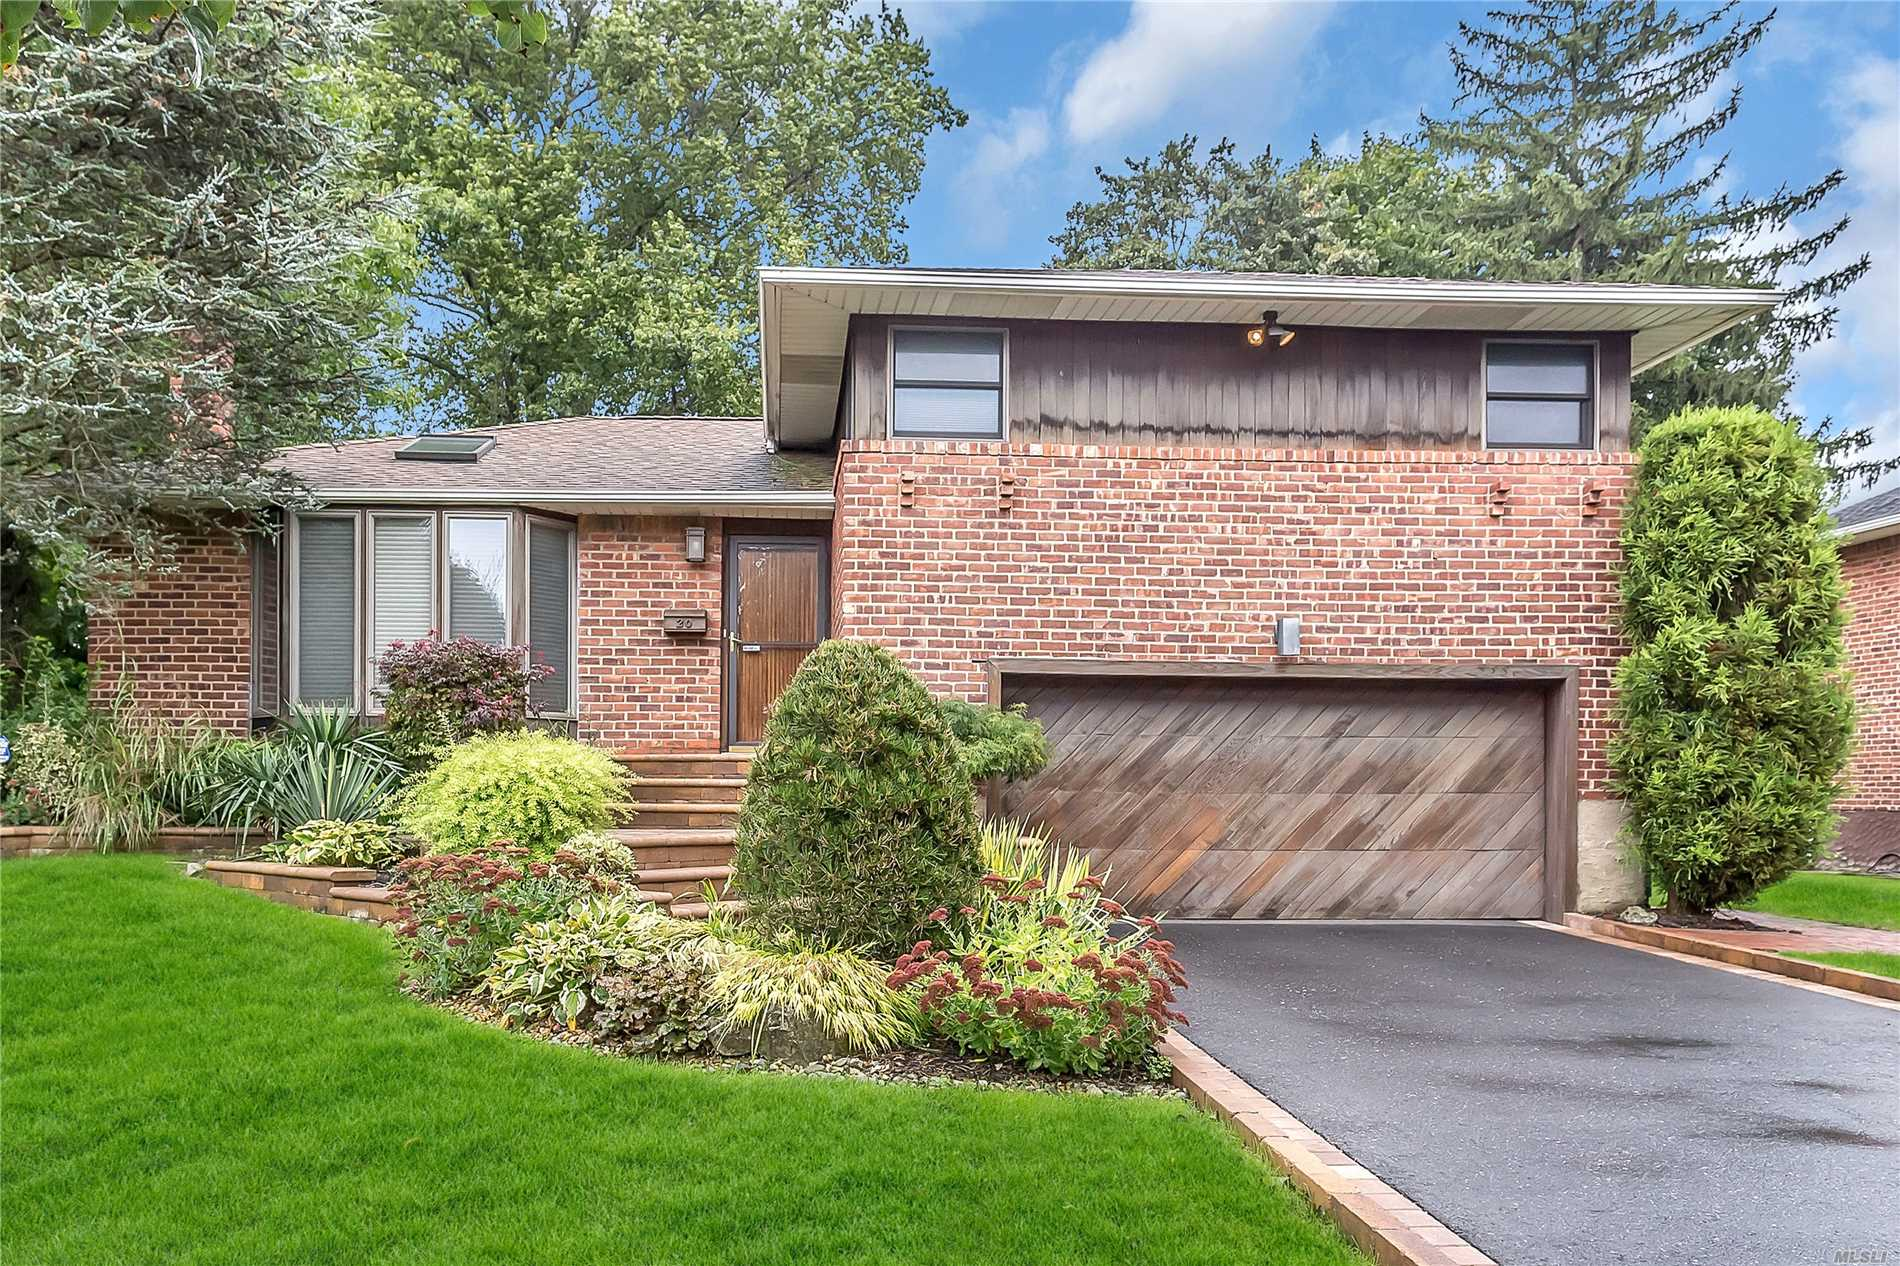 Perfect Sparkling Light & Bright Extremely Well Maintained Expanded Plainview Split W/Very Low Taxes $9, 203 W/Basic Star. Perfect Mid Block Location Expanded Eik W/Gas Cooking & Sliders To A Deck. Lr, Fdr, Expanded Mbr W/Full Bath, & A Wall Of Huge Closets, Beautiful Den W/Gas Fireplace & Sliders To Lower Deck. This Home Really Has It All - Gas Cooking, Gas Heat, Central Air Conditioning, In Ground Sprinklers, Finished Basement, Plainview Sd, Gas Bbq, A Must See!